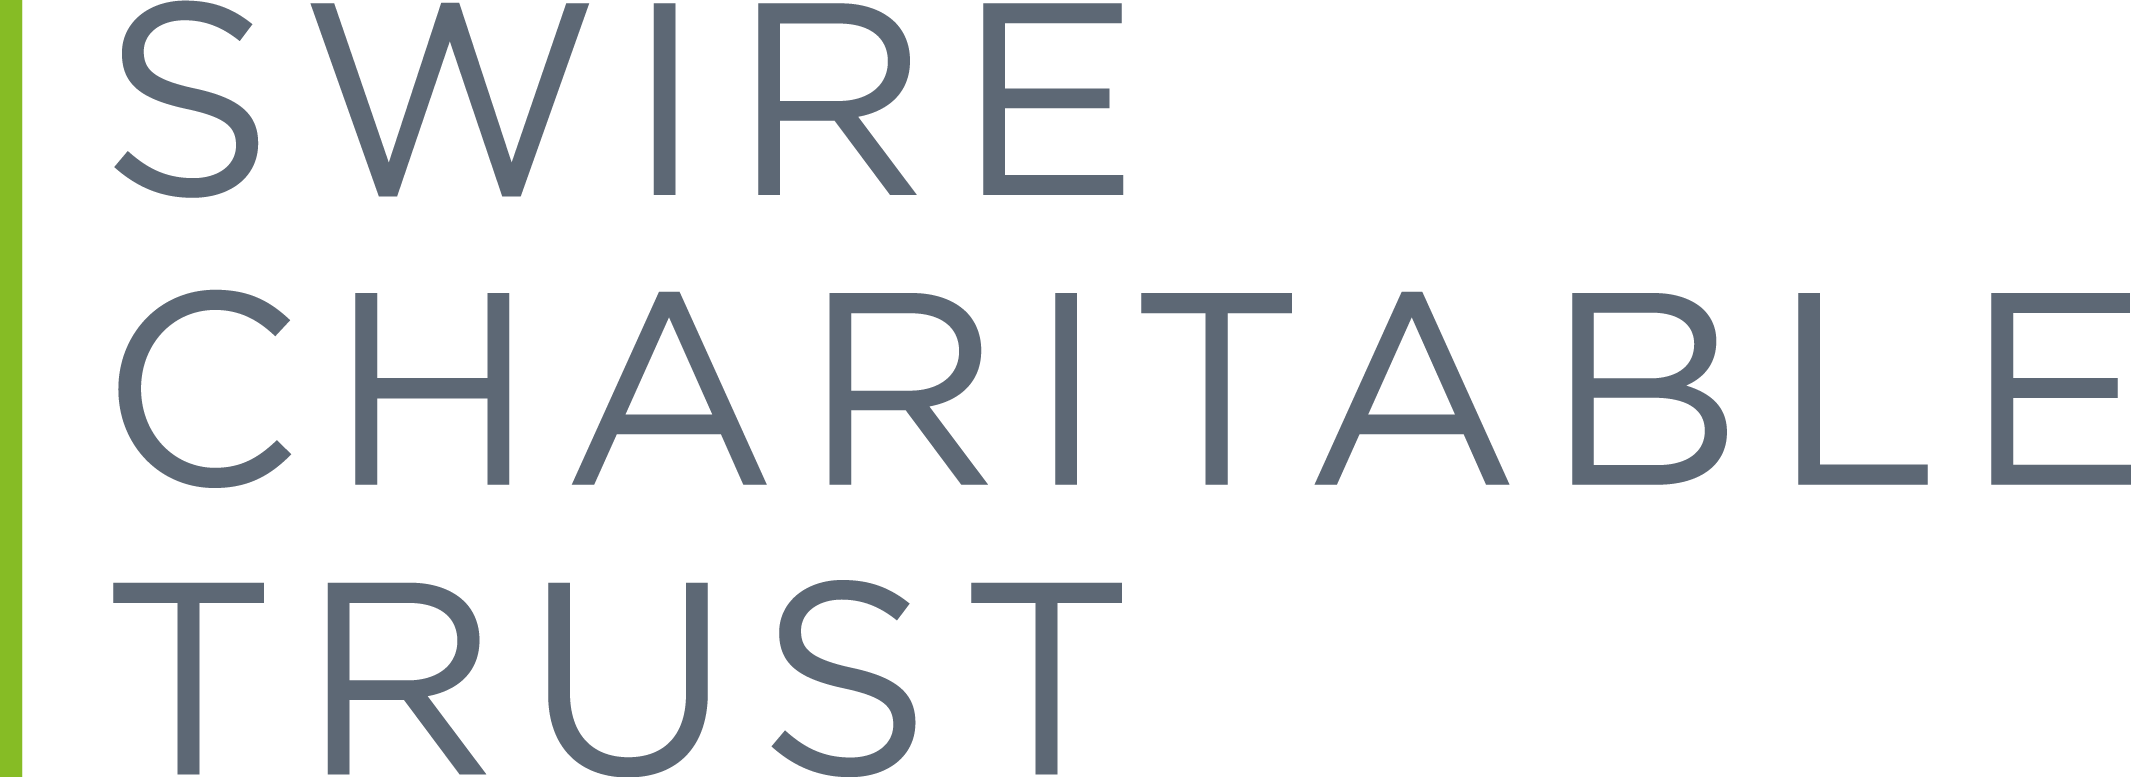 https://www.swirecharitabletrust.org.uk/